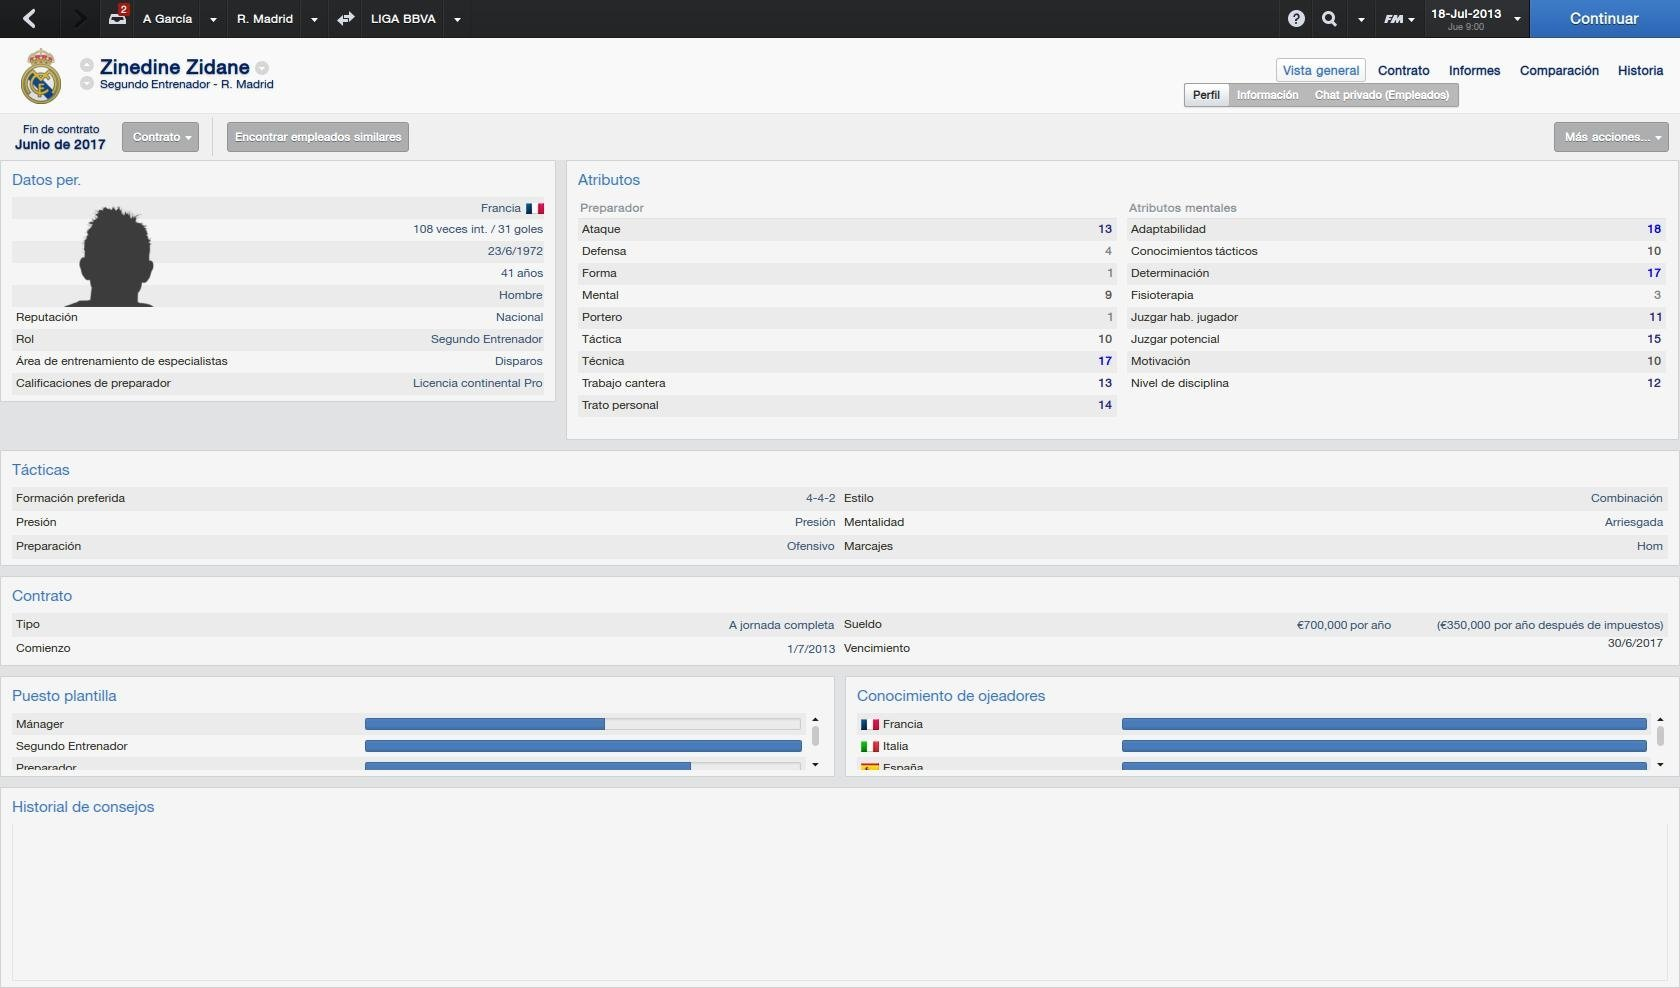 Football Manager image 8